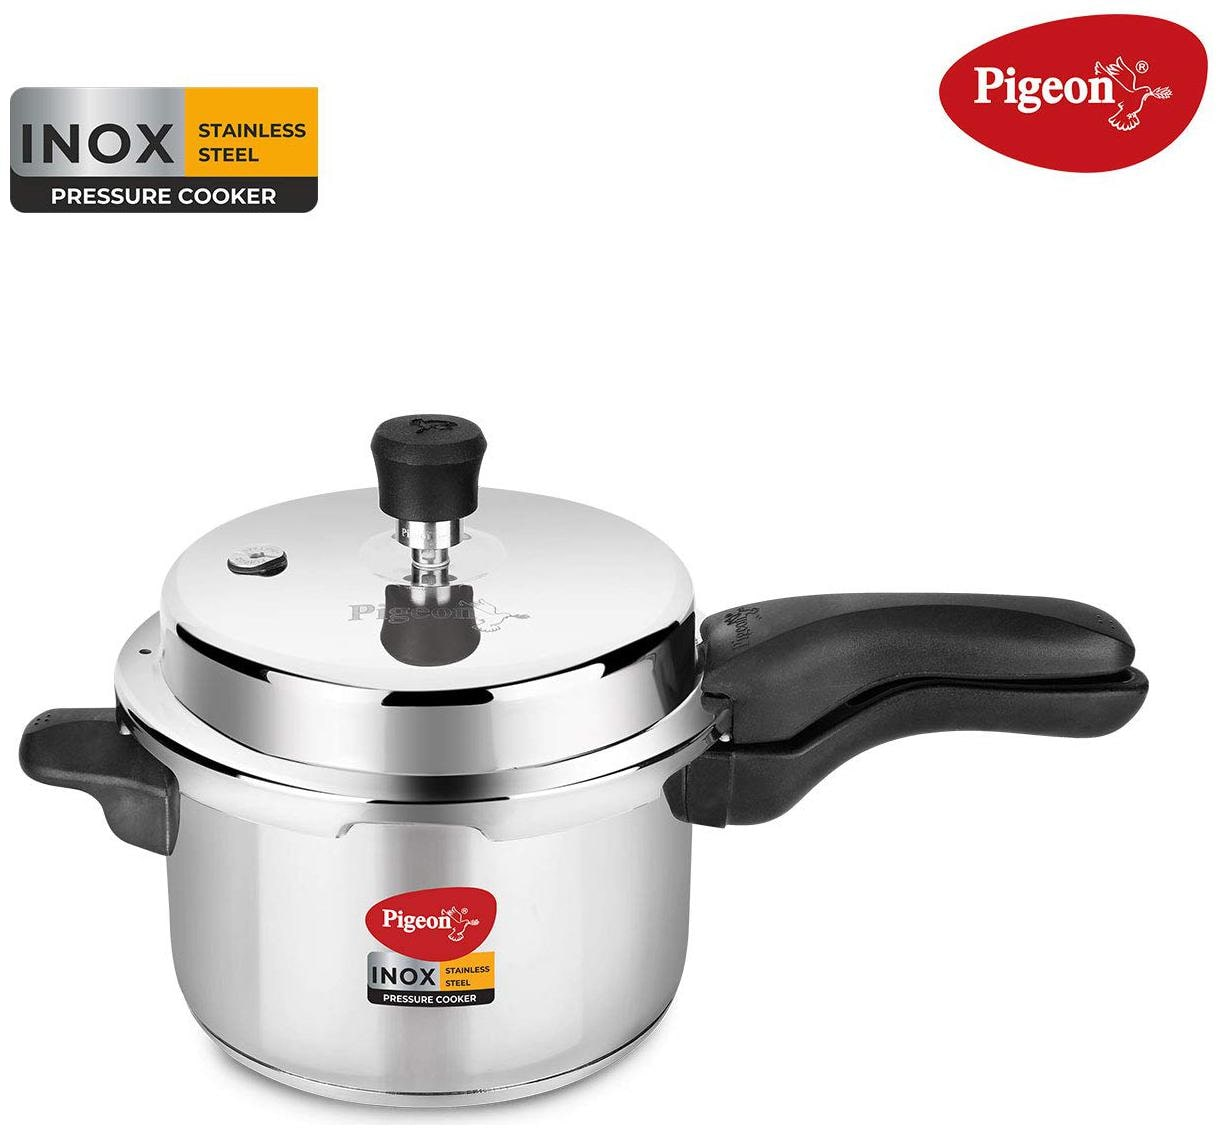 Pigeon Inox 3 L Induction Bottom Pressure Cooker (Stainless Steel)